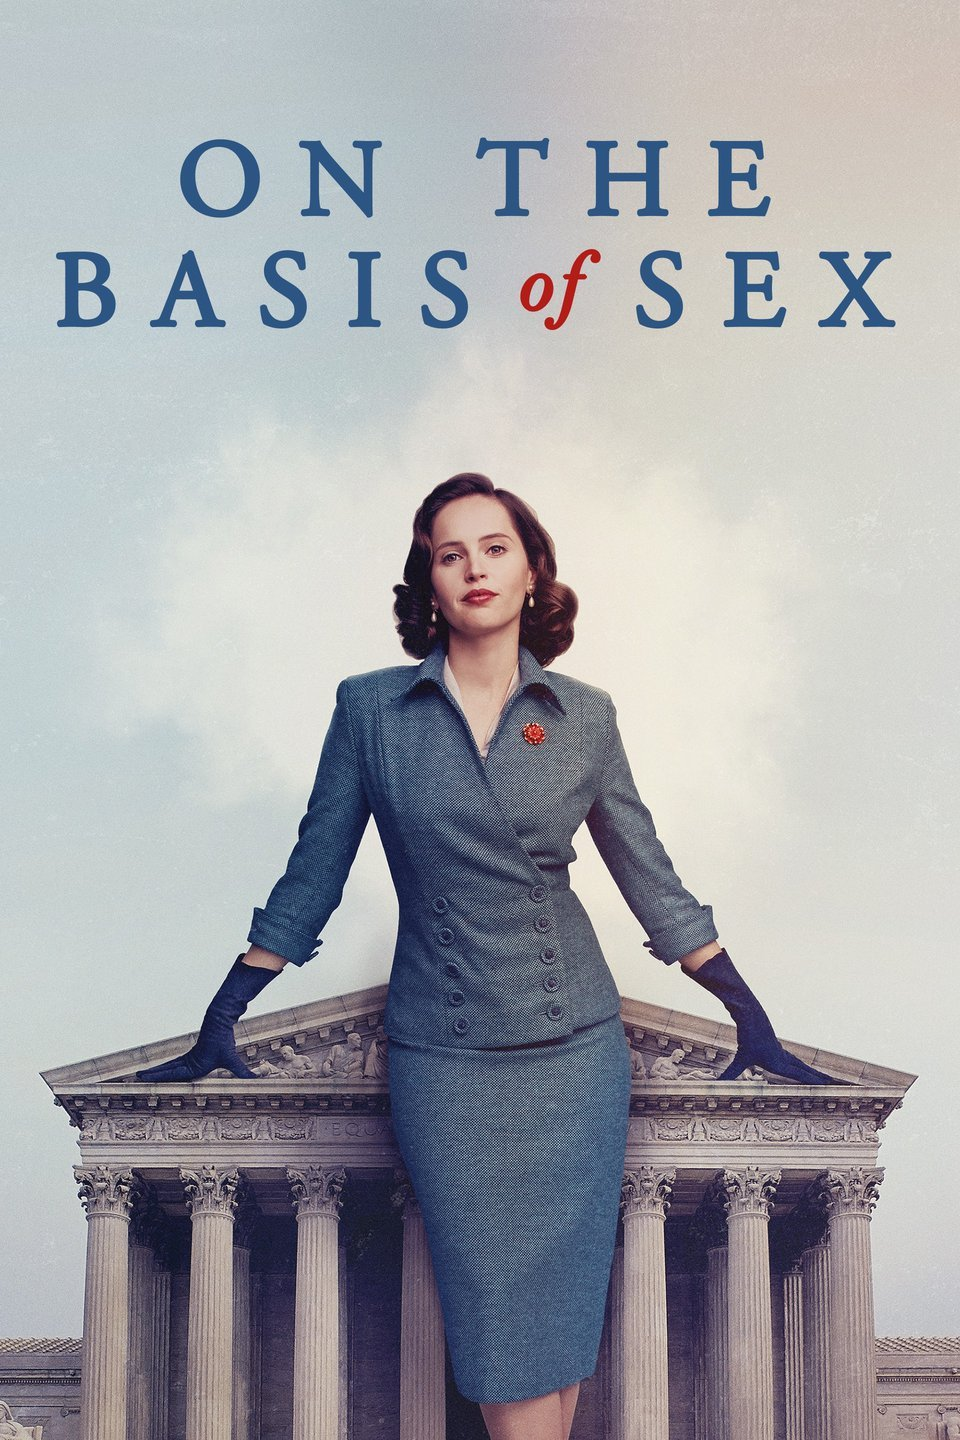 Movies@ Albany Libary - Basis of Sex (Ruth Bader Ginsberg Story)